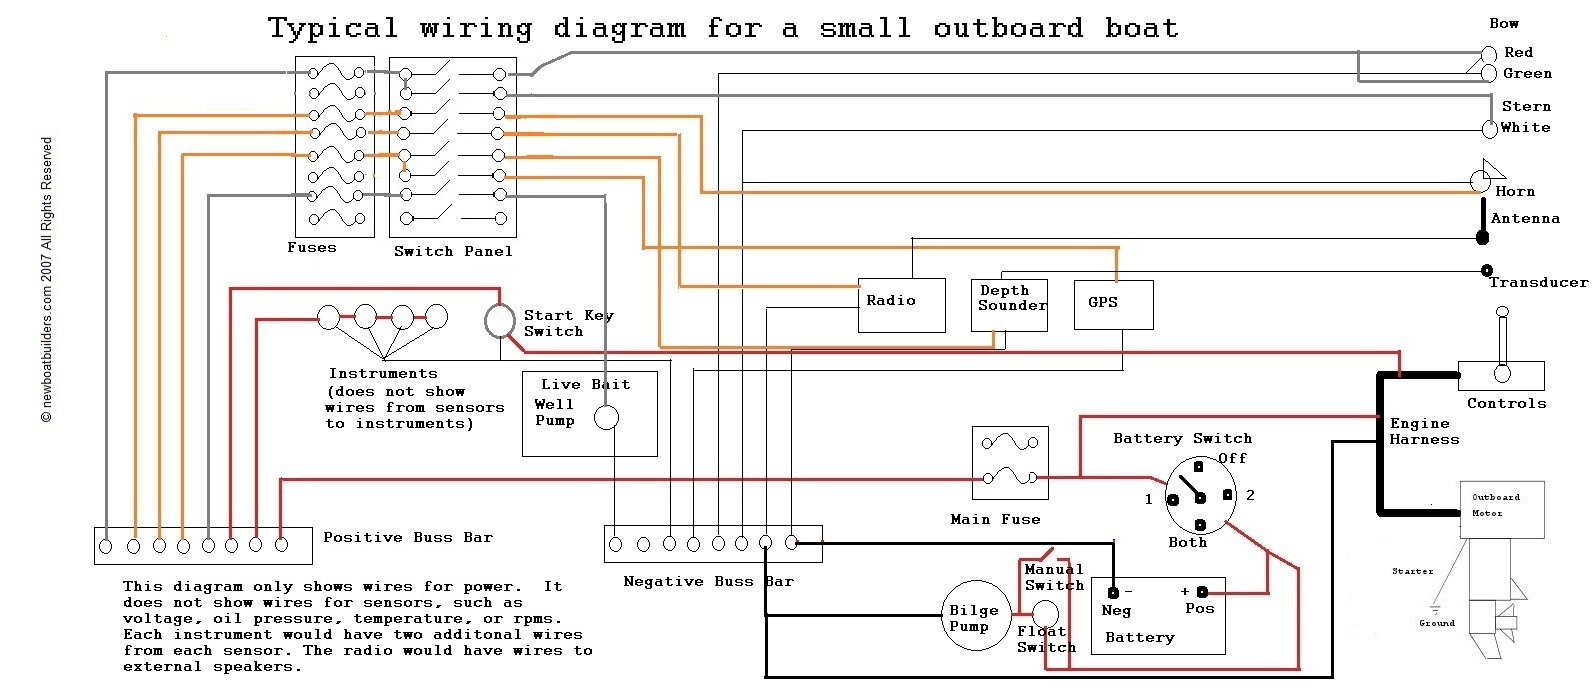 Circuit Panel Wiring Diagram: Boat Building Standards   Basic Electricity   Wiring Your Boat,